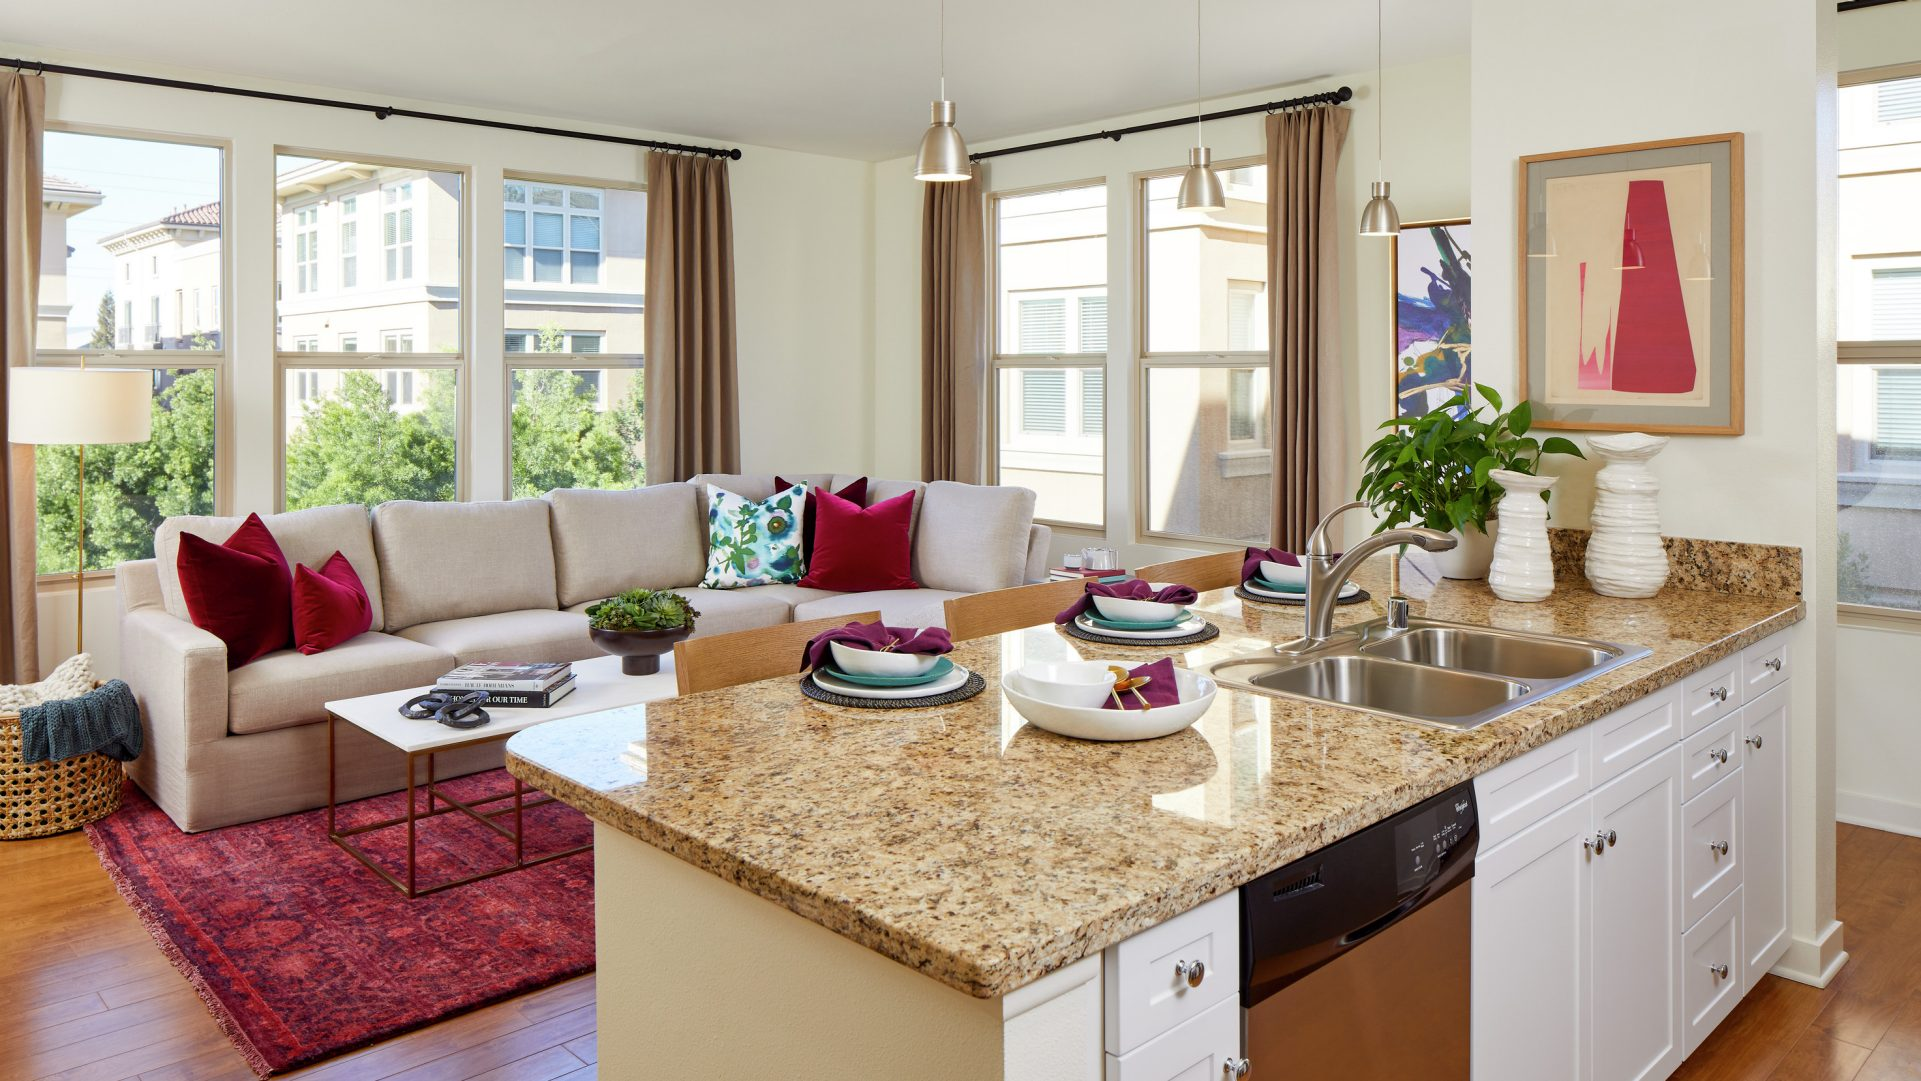 Interior view of Kitchen and Living Room at Crescent Village Apartment Homes in San Jose, CA.